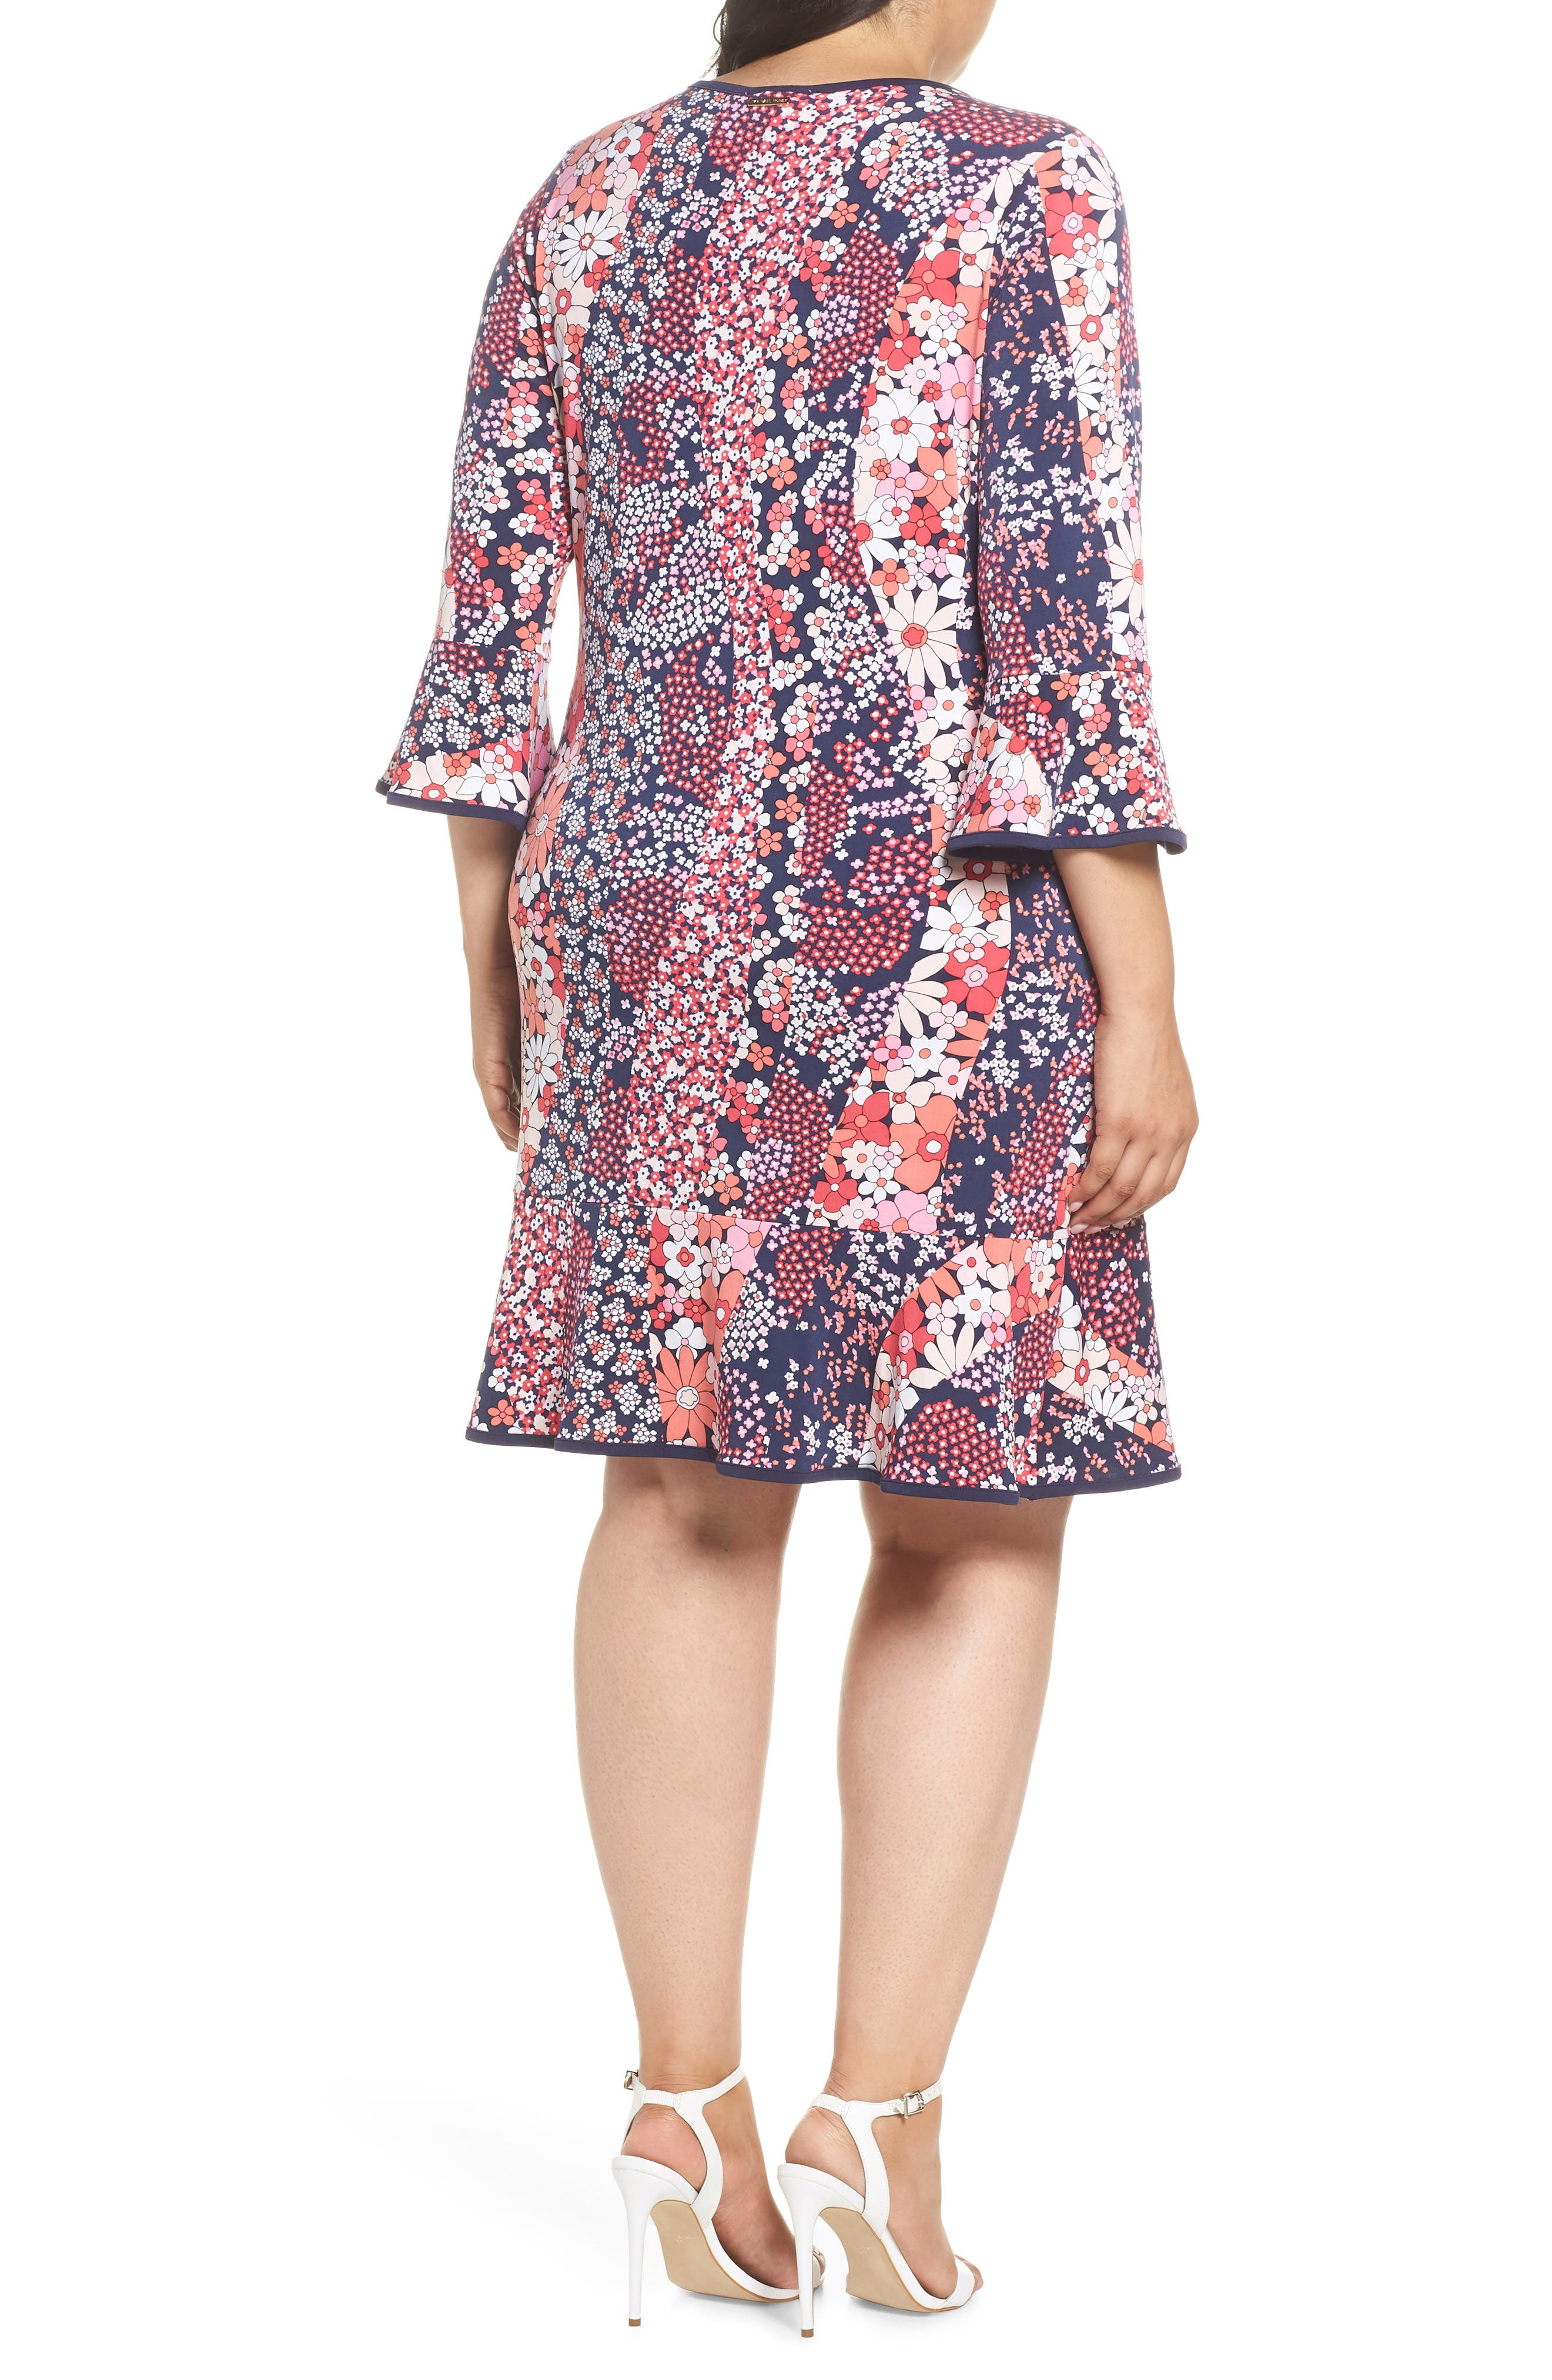 Patchwork Floral Bell Sleeve Shift Dress,                             Alternate thumbnail 2, color,                             True Navy/ Bright Blush